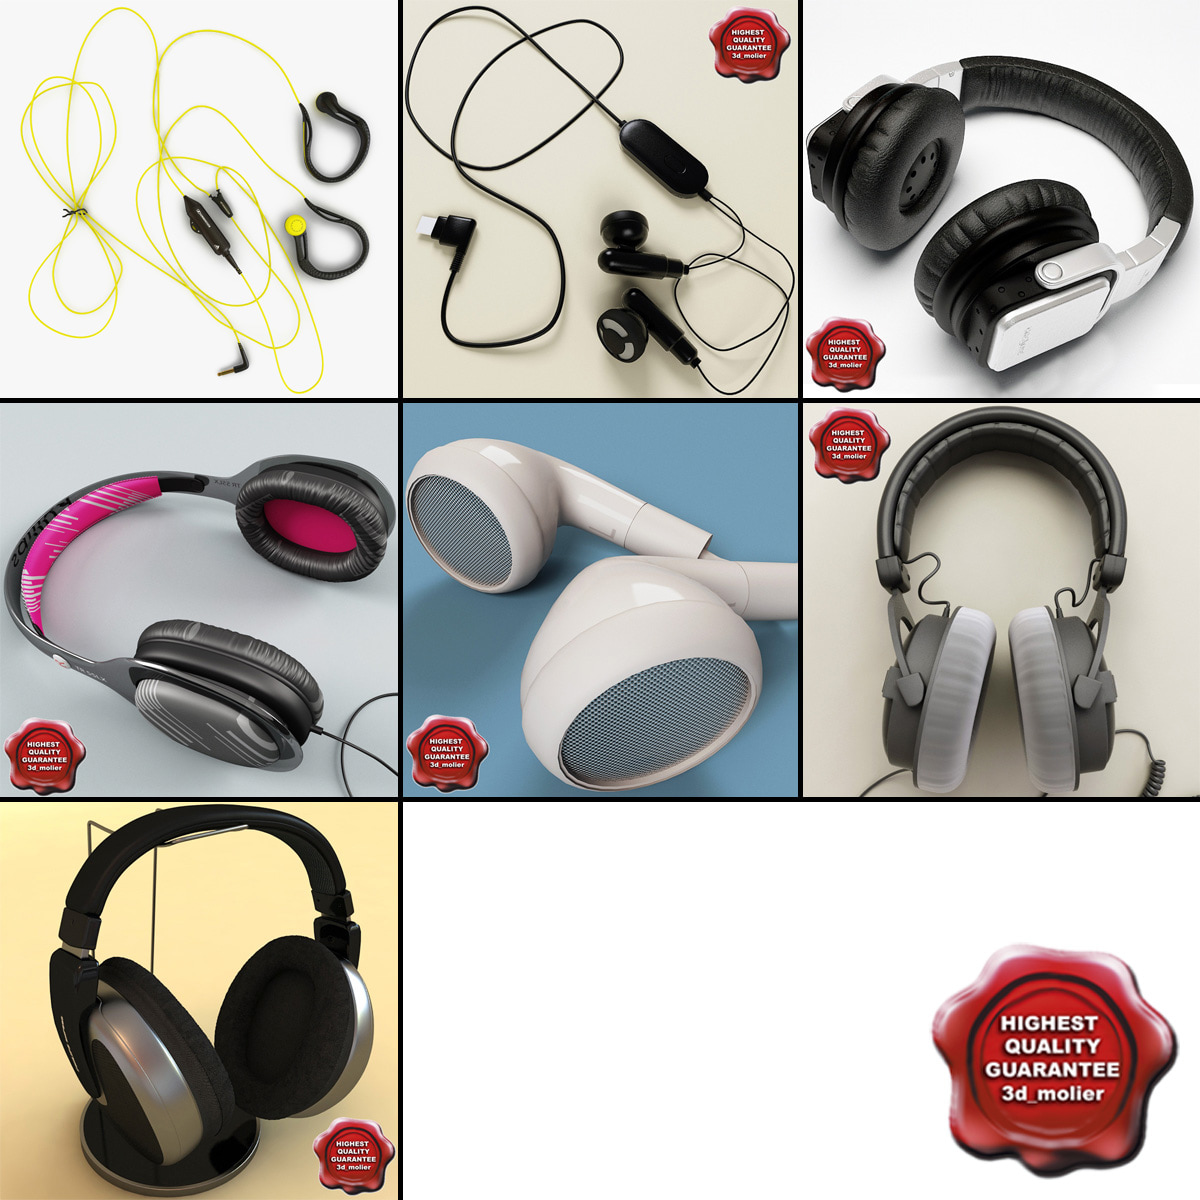 Headphones_Collection_V3_00.jpg